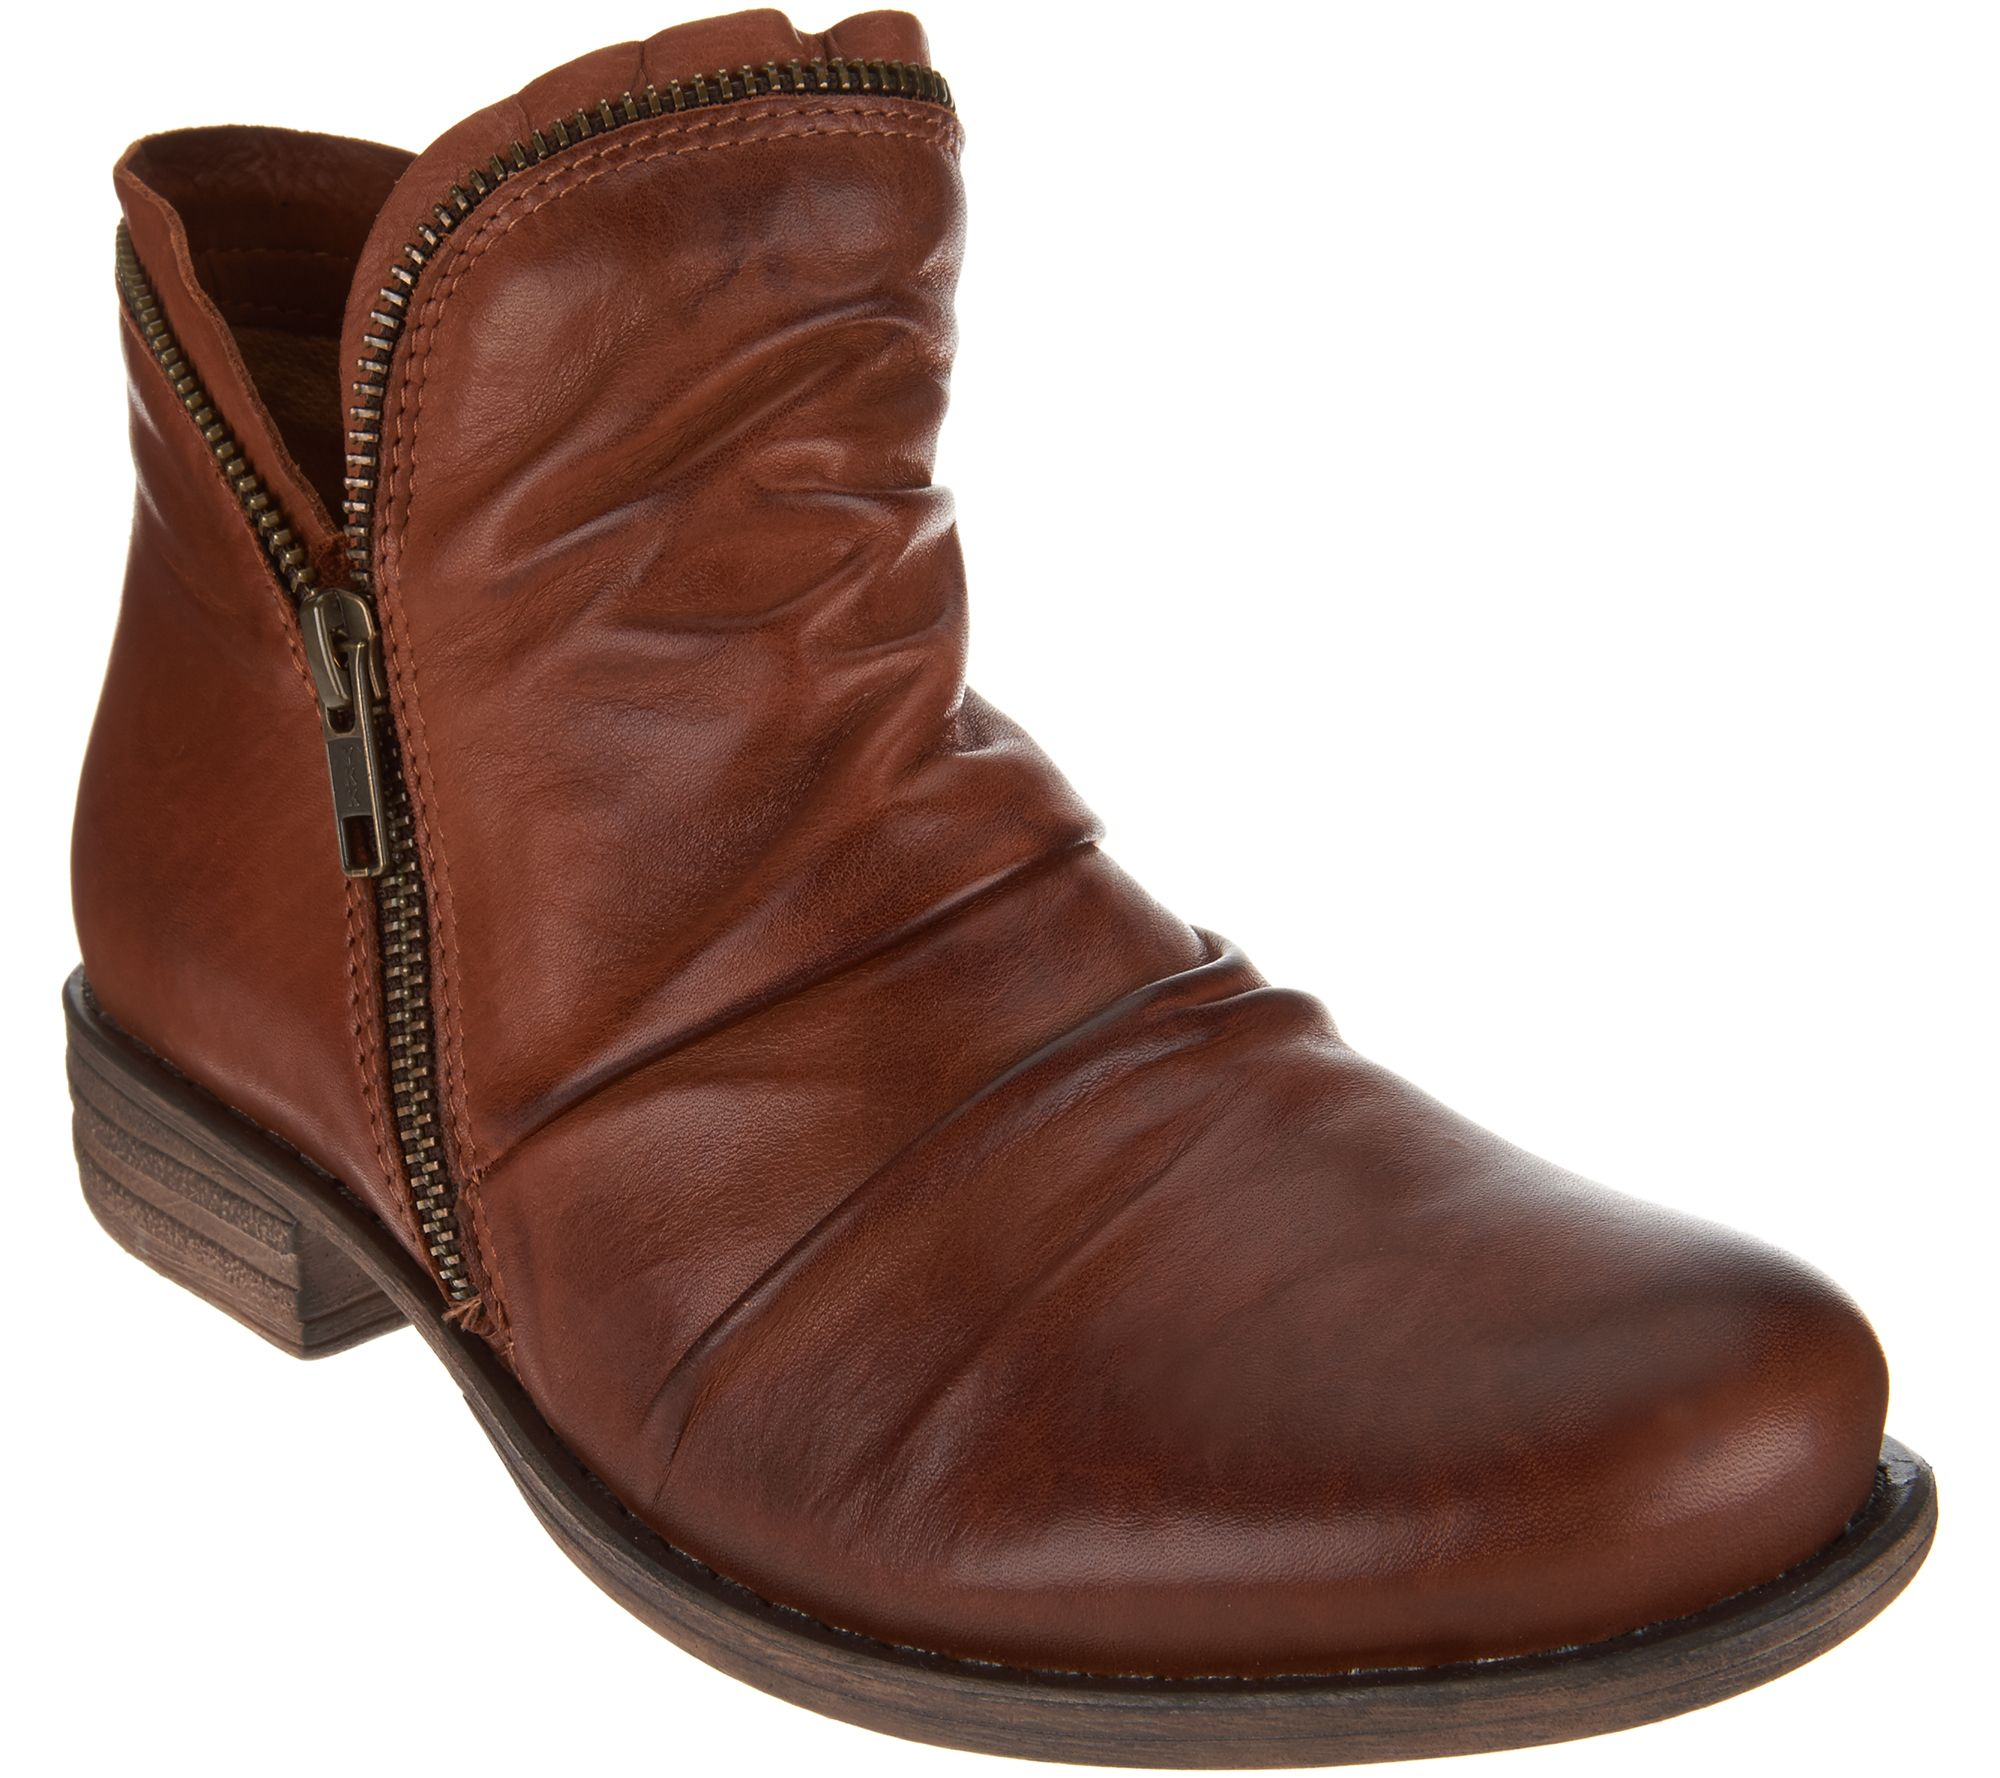 Miz Mooz Leather Ankle Boots with Side Zip - Luna sale marketable outlet release dates cheap fashion Style with mastercard for sale affordable cheap price JKGQxk